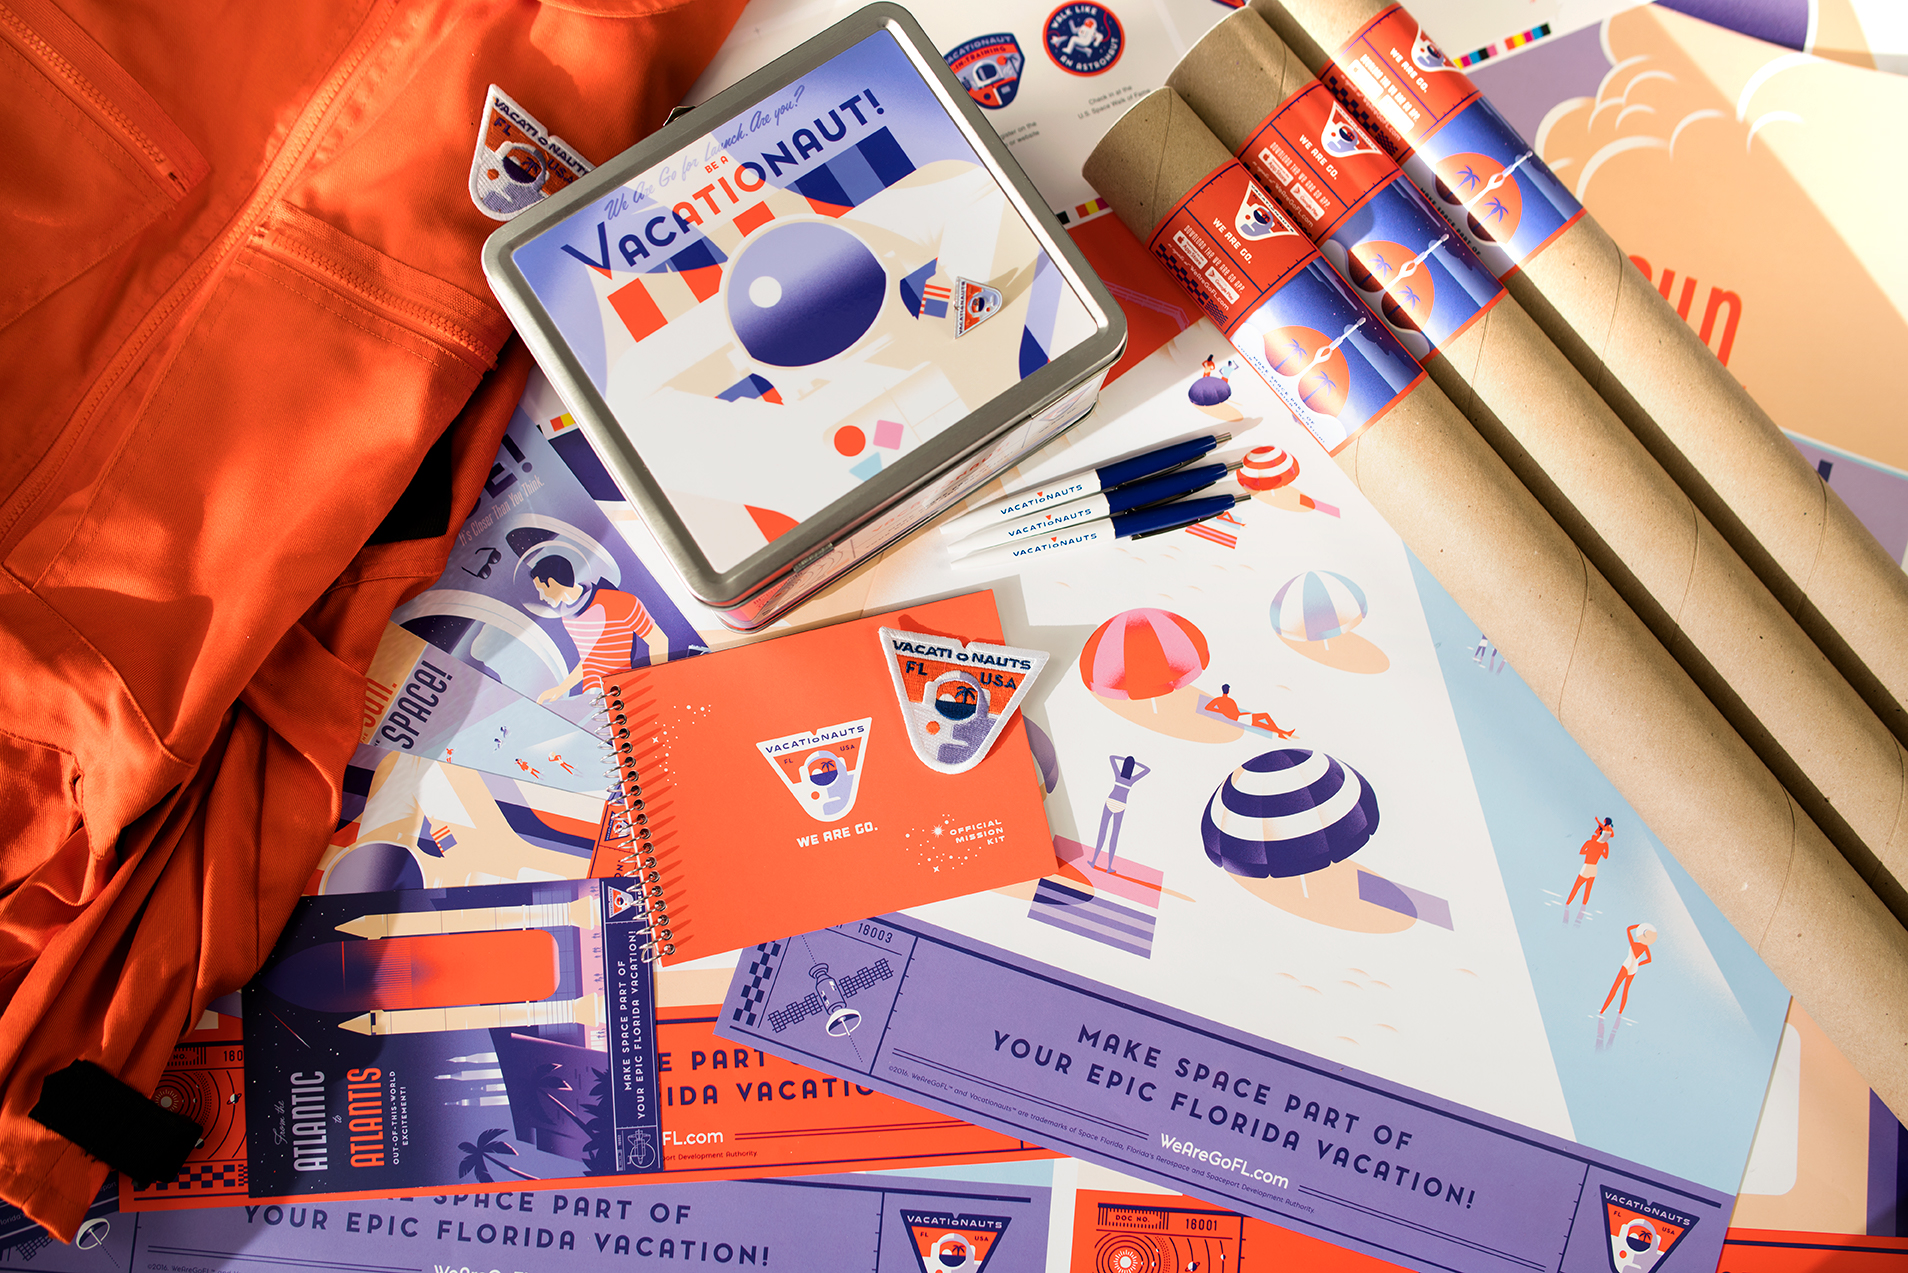 We Are Go Vacationaut Promotion Materials.jpg